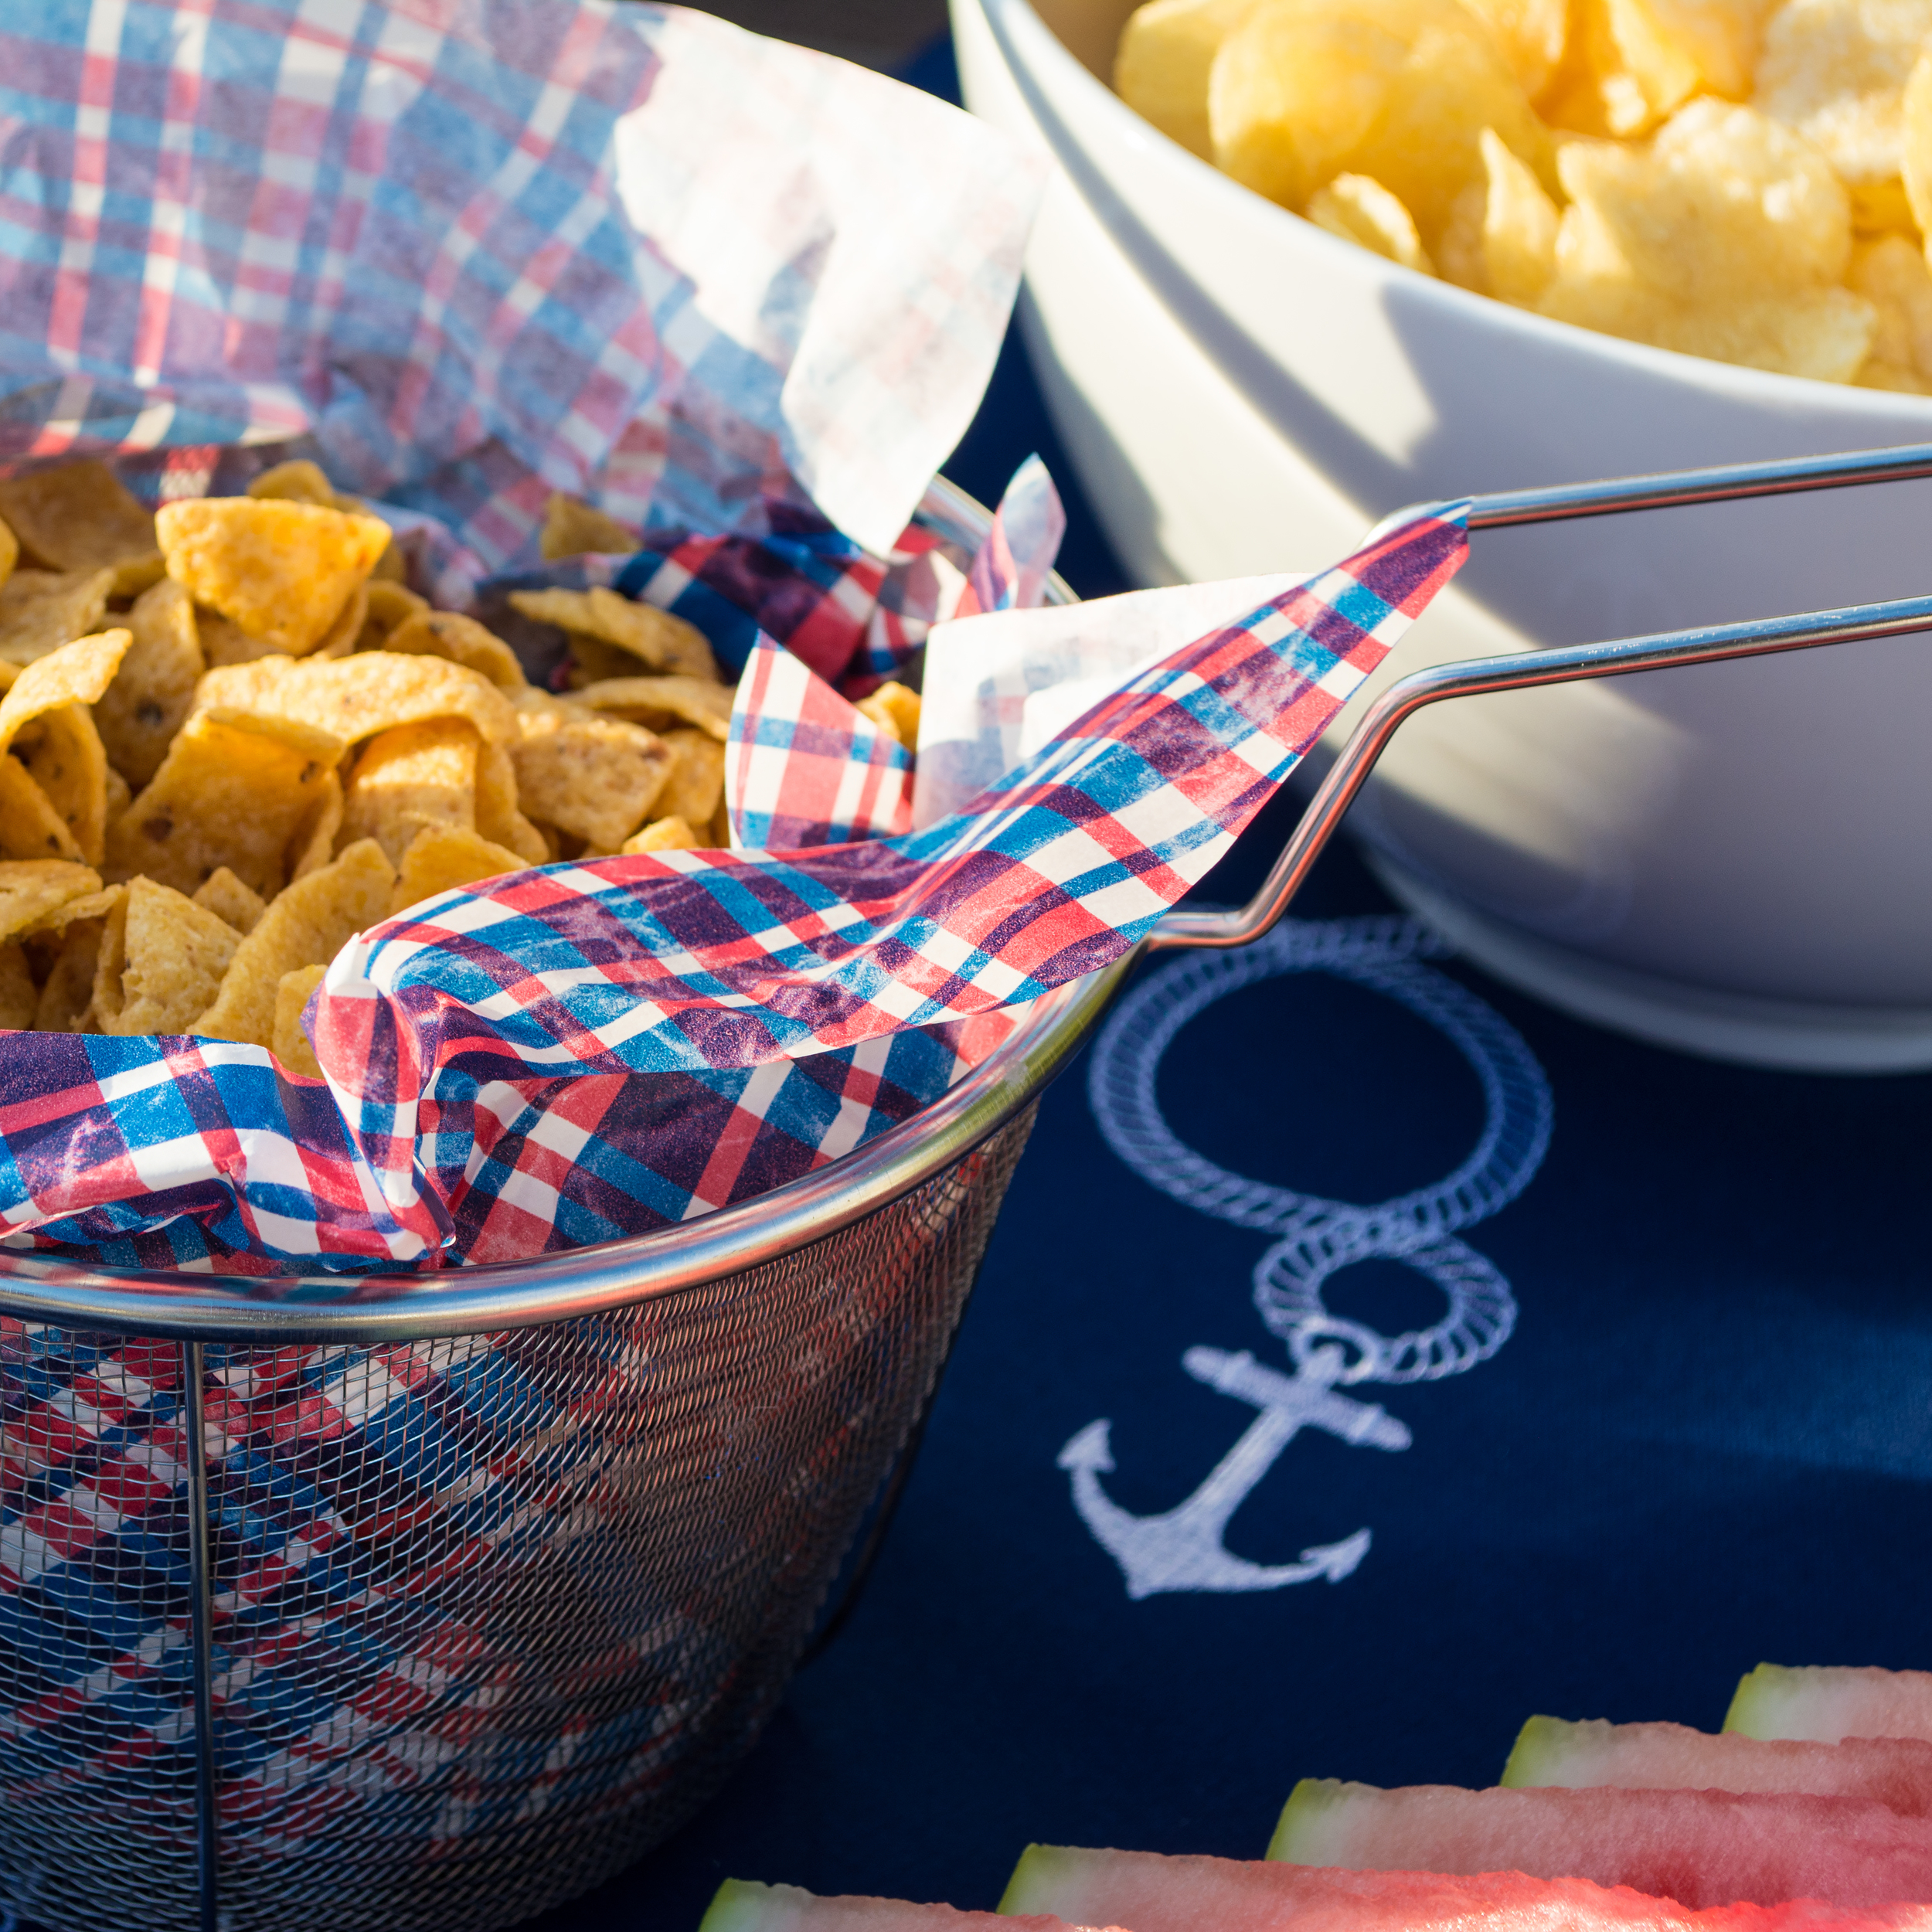 23 Tips to Throw An Awesome Summer Party